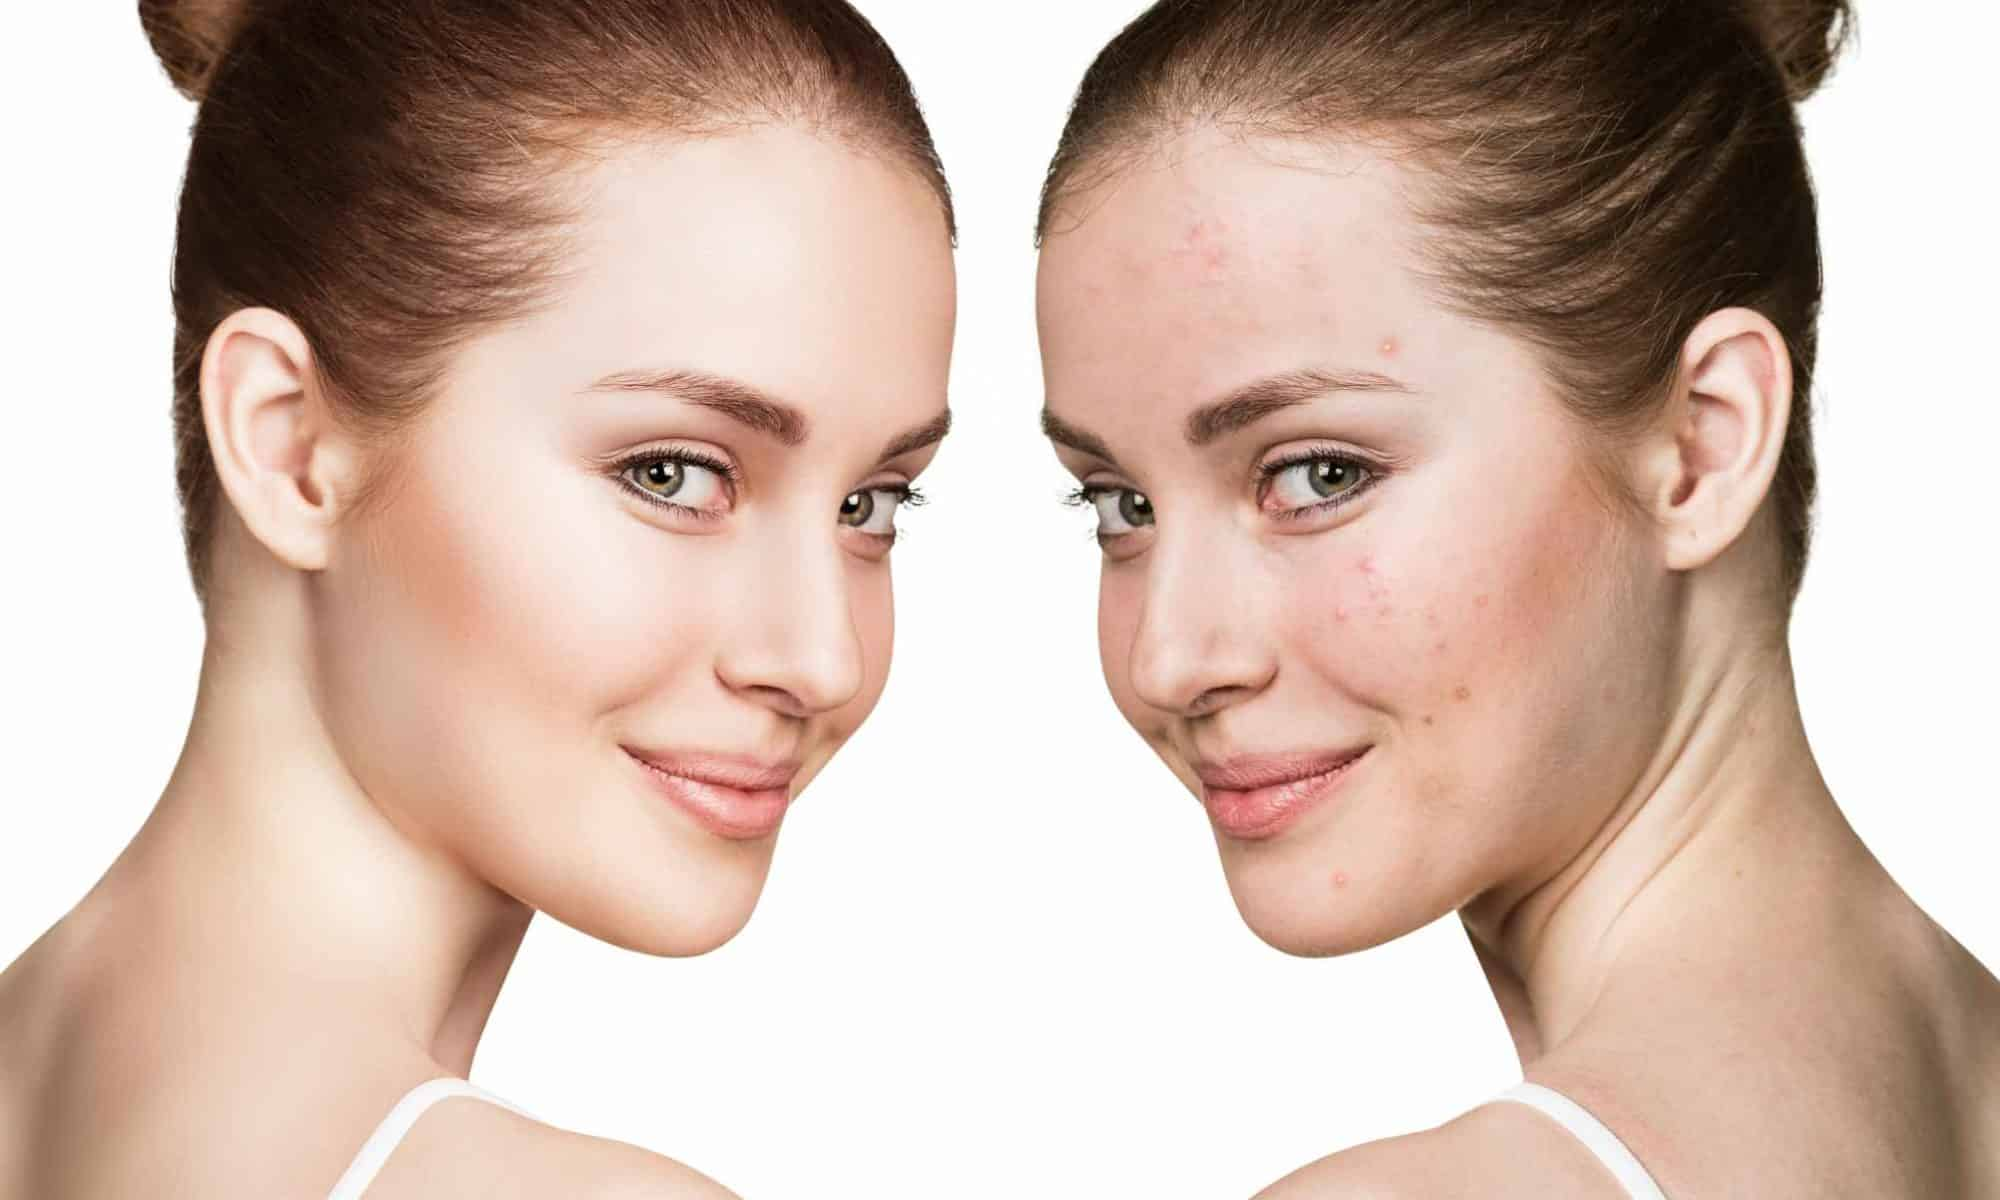 Tampa-Bay-USF-Laser-Acne-Treatment-Temple-Terrace